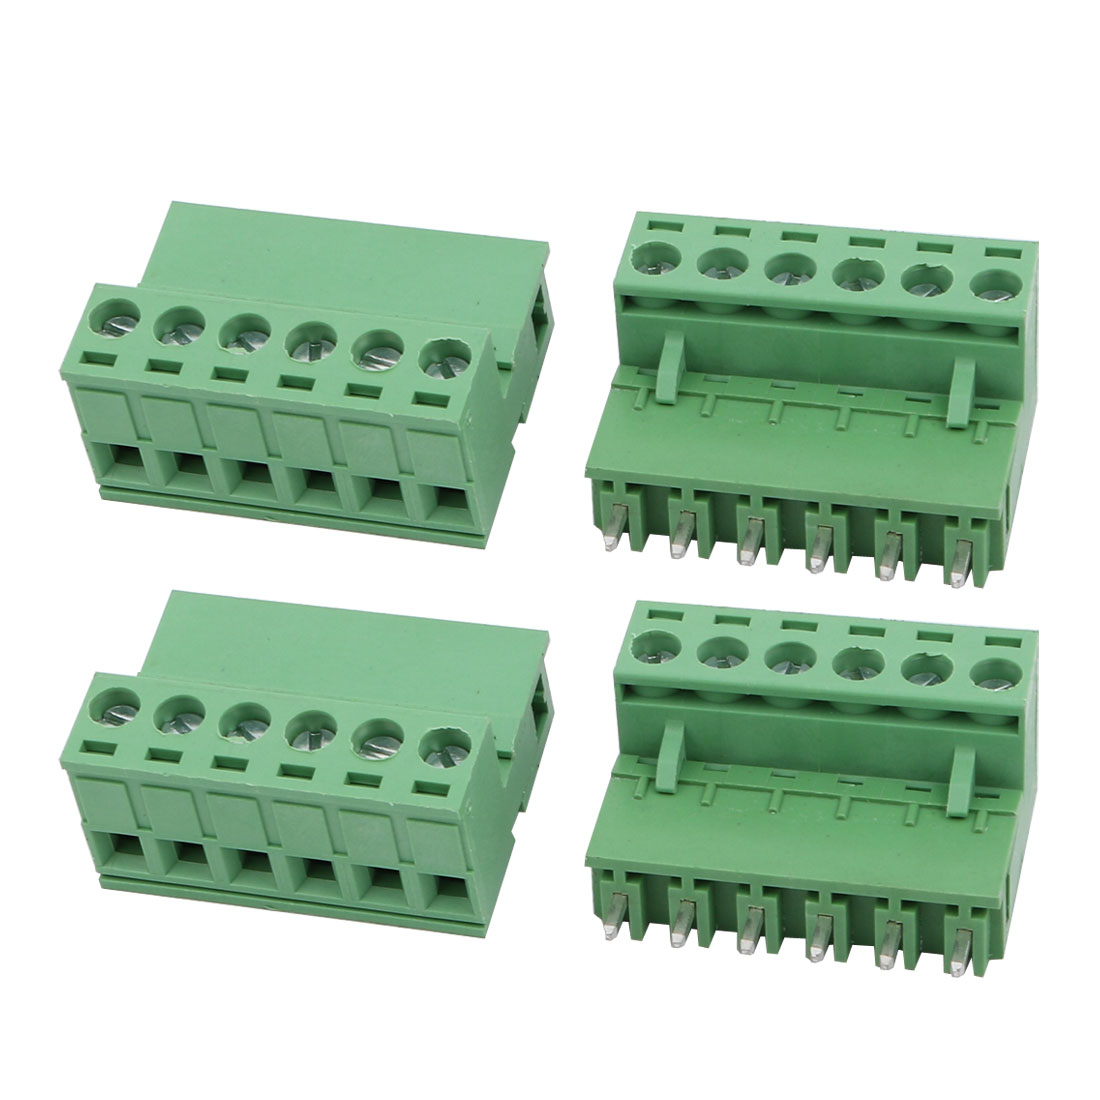 4Sets AC 300V 10A 5.08mm Pitch 6P PCB Terminal Block Female Male Wire Connector